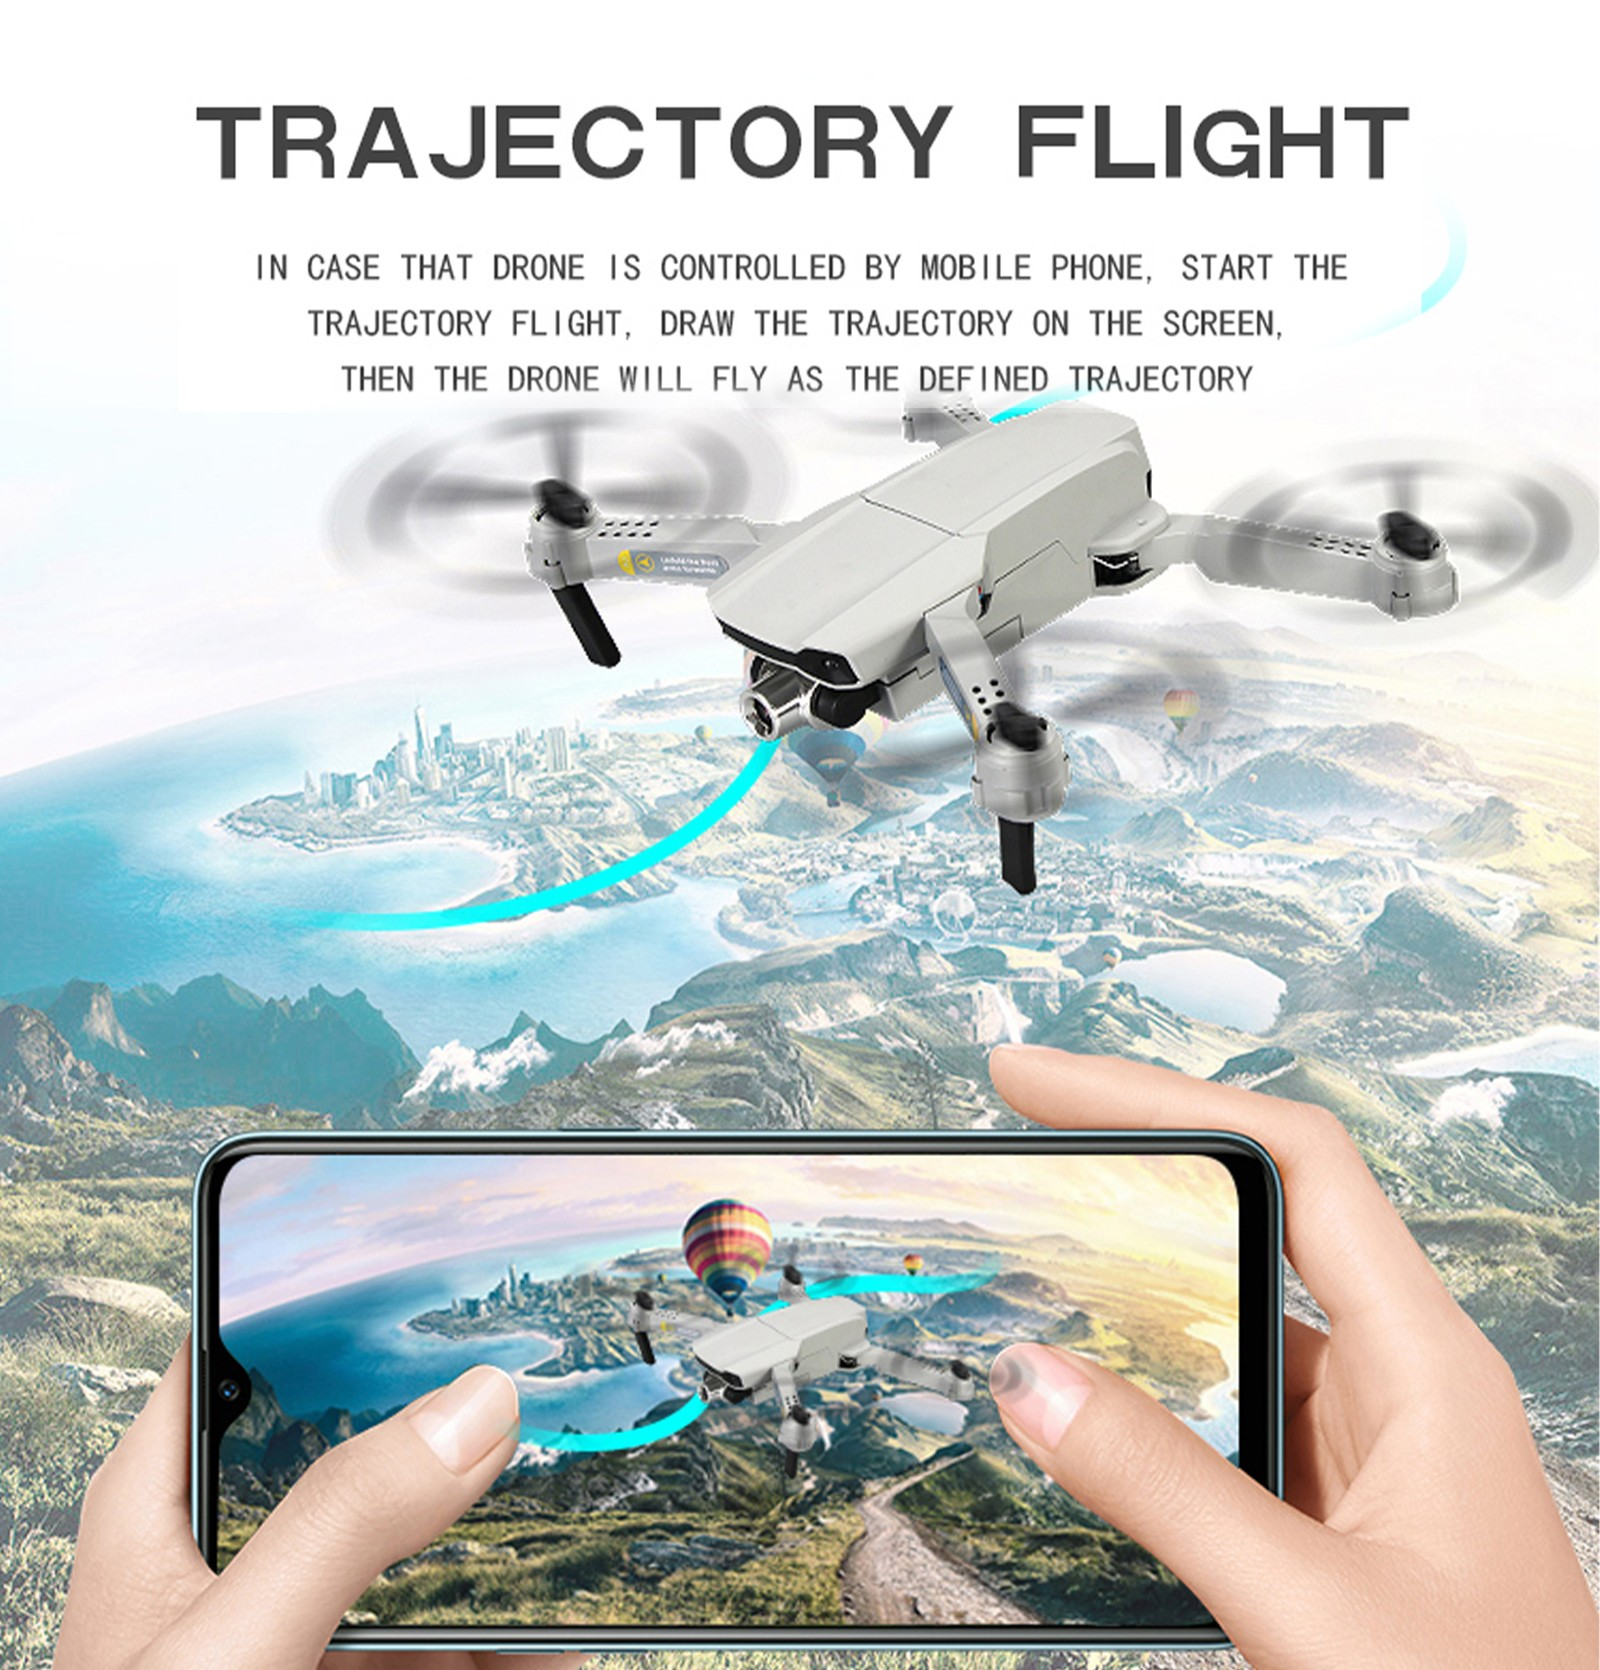 CSJ-X2 RC Drone Toy - Gray 4k with single camera